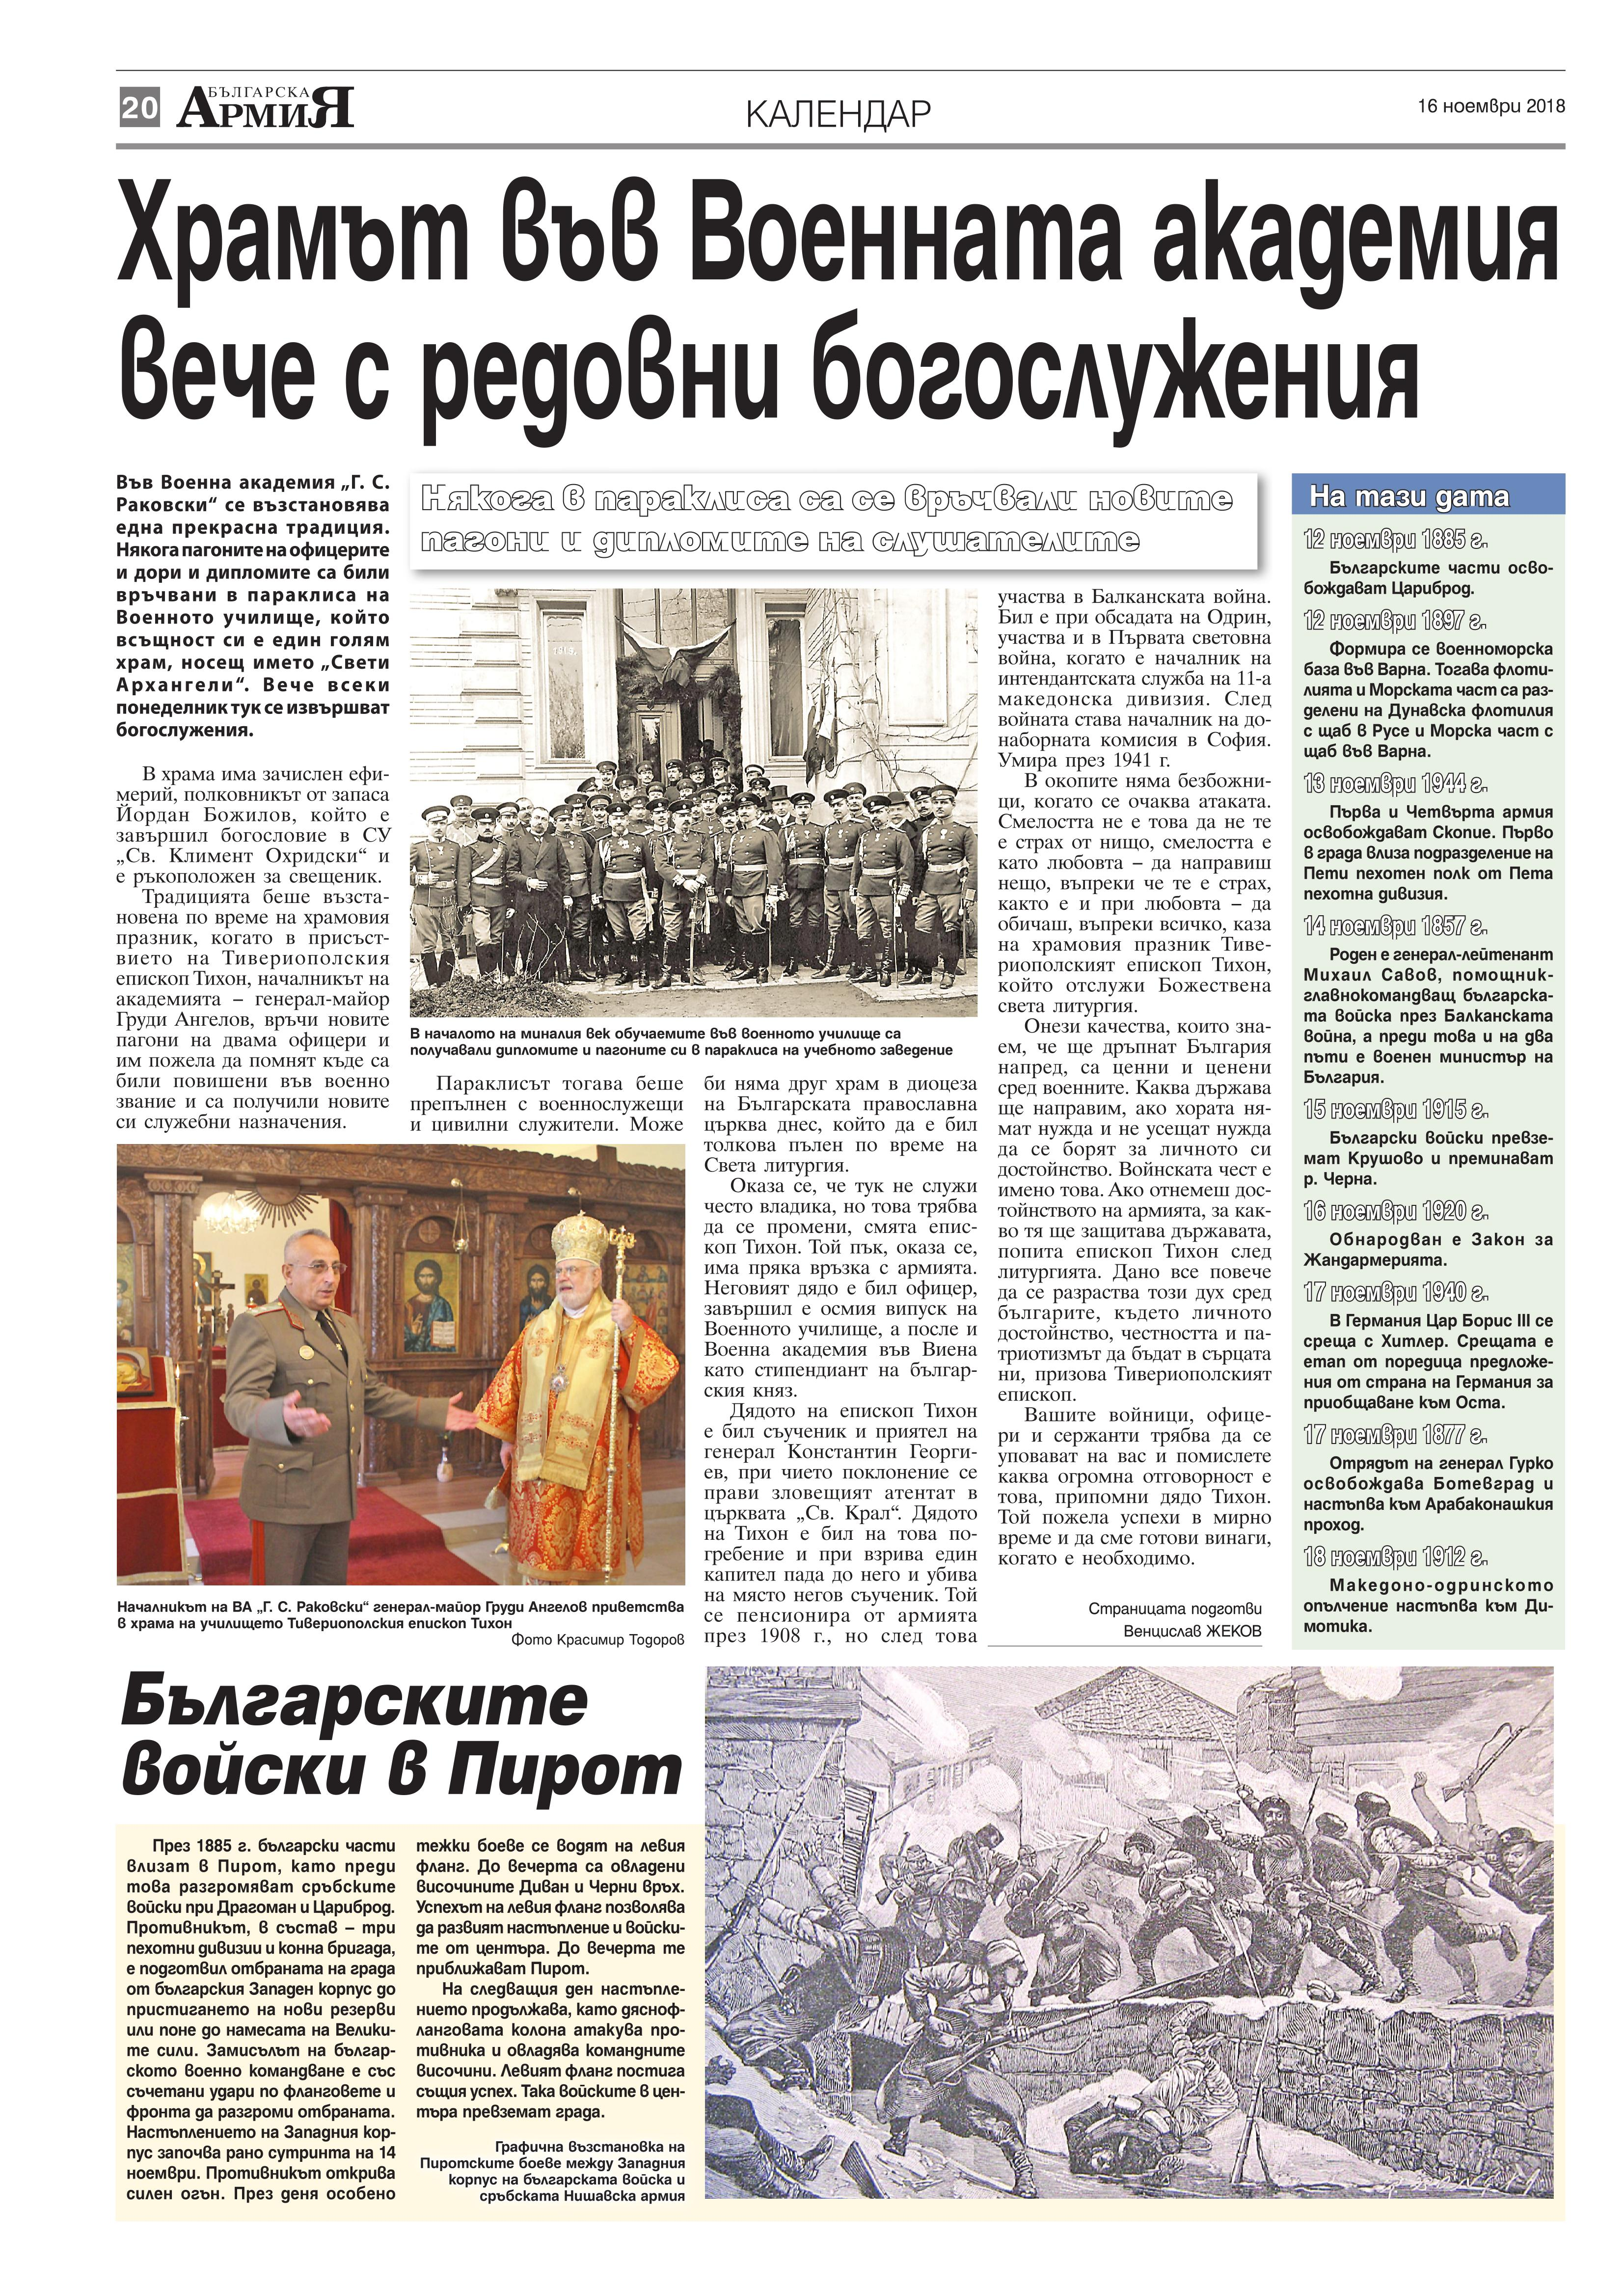 https://armymedia.bg/wp-content/uploads/2015/06/20.page1_-73.jpg